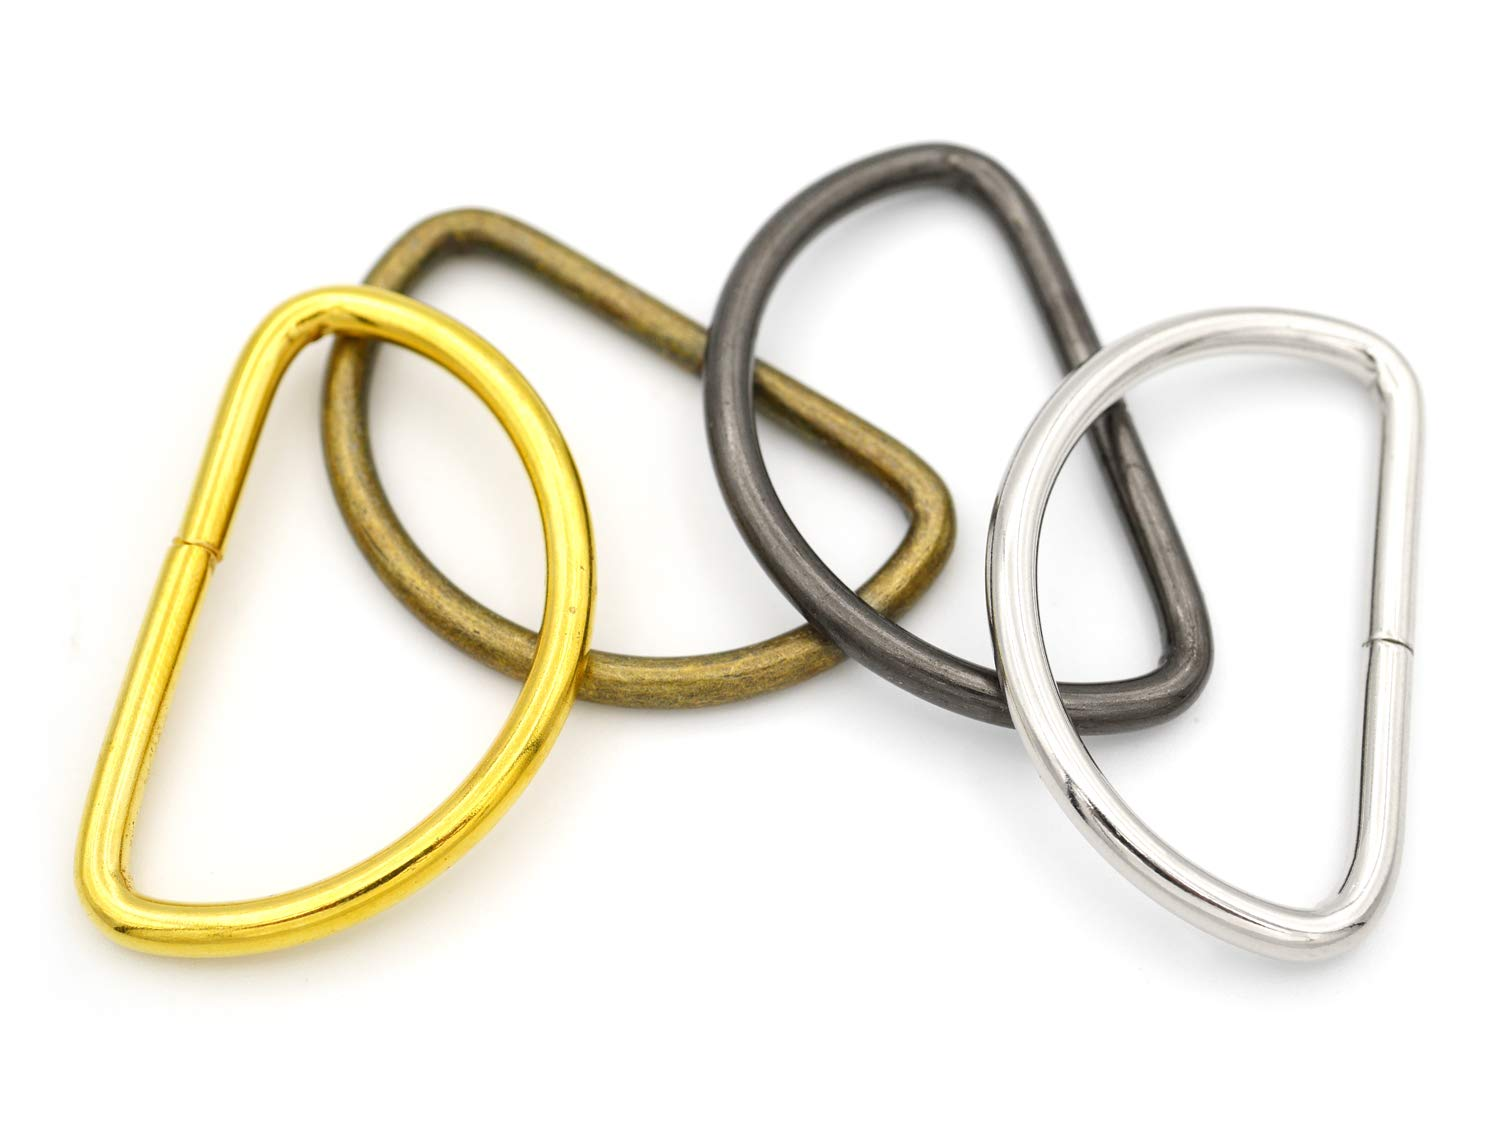 1 1//4 Inches, Silver CRAFTMEmore D-Ring Findings Metal Non Welded D Rings for Belts Bags Landyard Leathercraft Available 4 Colors 1 1//4 /& 1 1//2 Inches Pack of 20